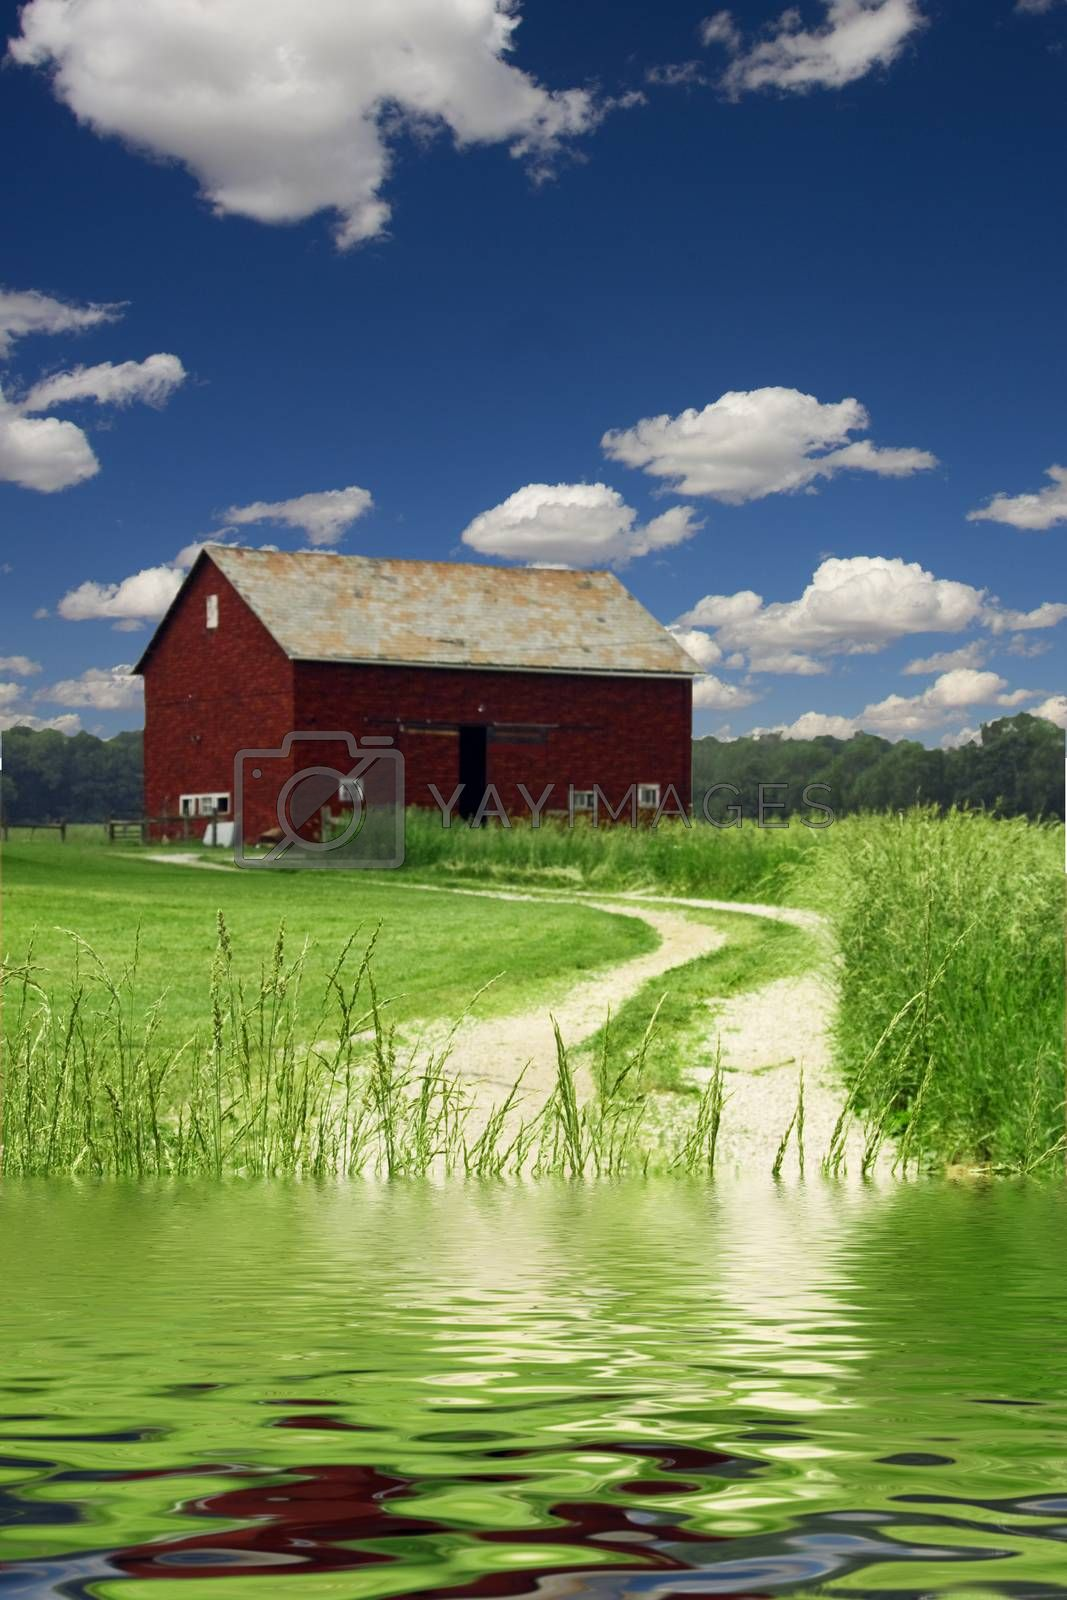 Red Barn in field of wheat. River or lakeshore